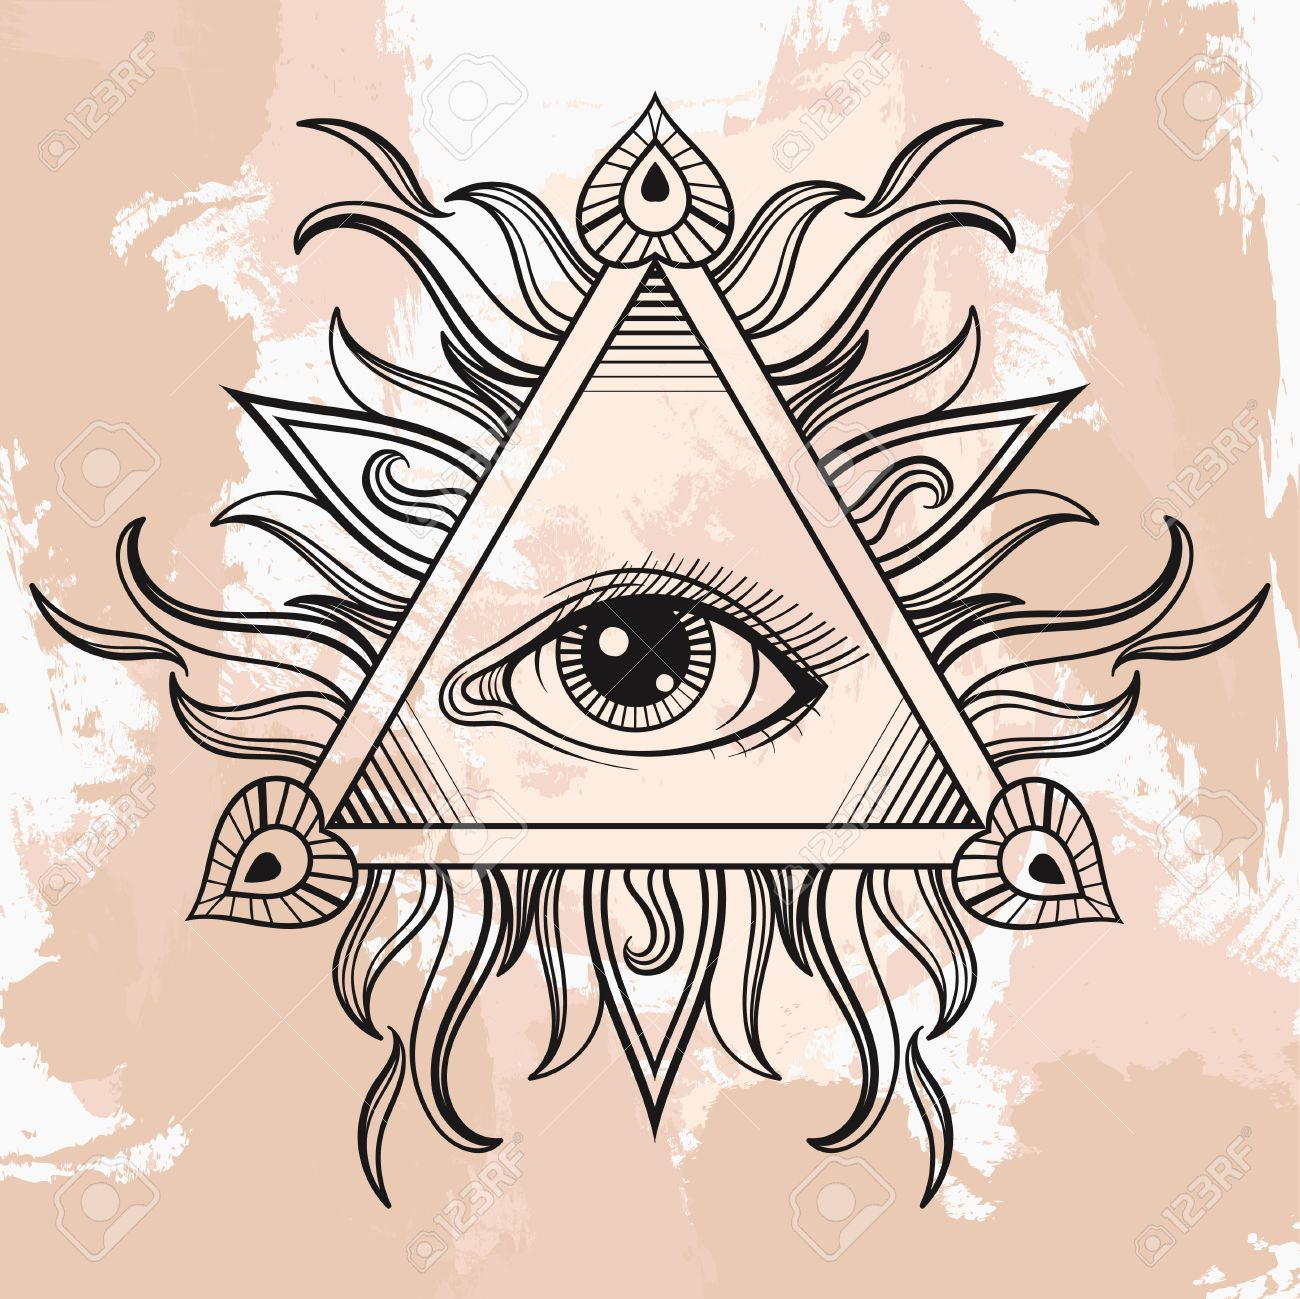 Vector all seeing eye pyramid symbol illumination tattoo vintage vector all seeing eye pyramid symbol illumination tattoo vintage hand drawn freedom spiritual buycottarizona